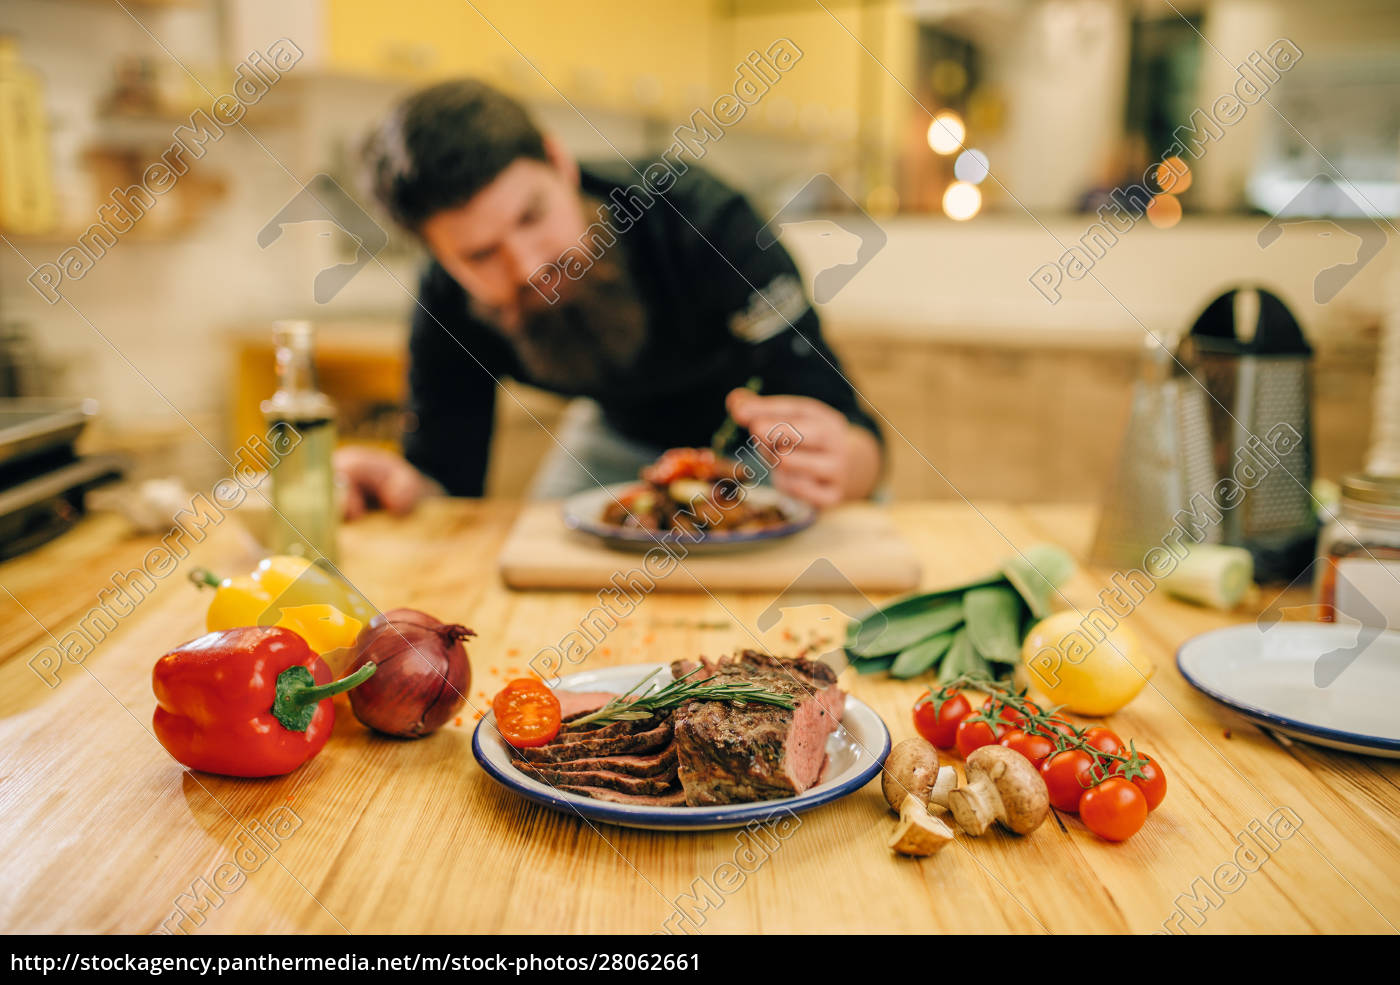 chef, decorates, with, herbs, a, meat - 28062661